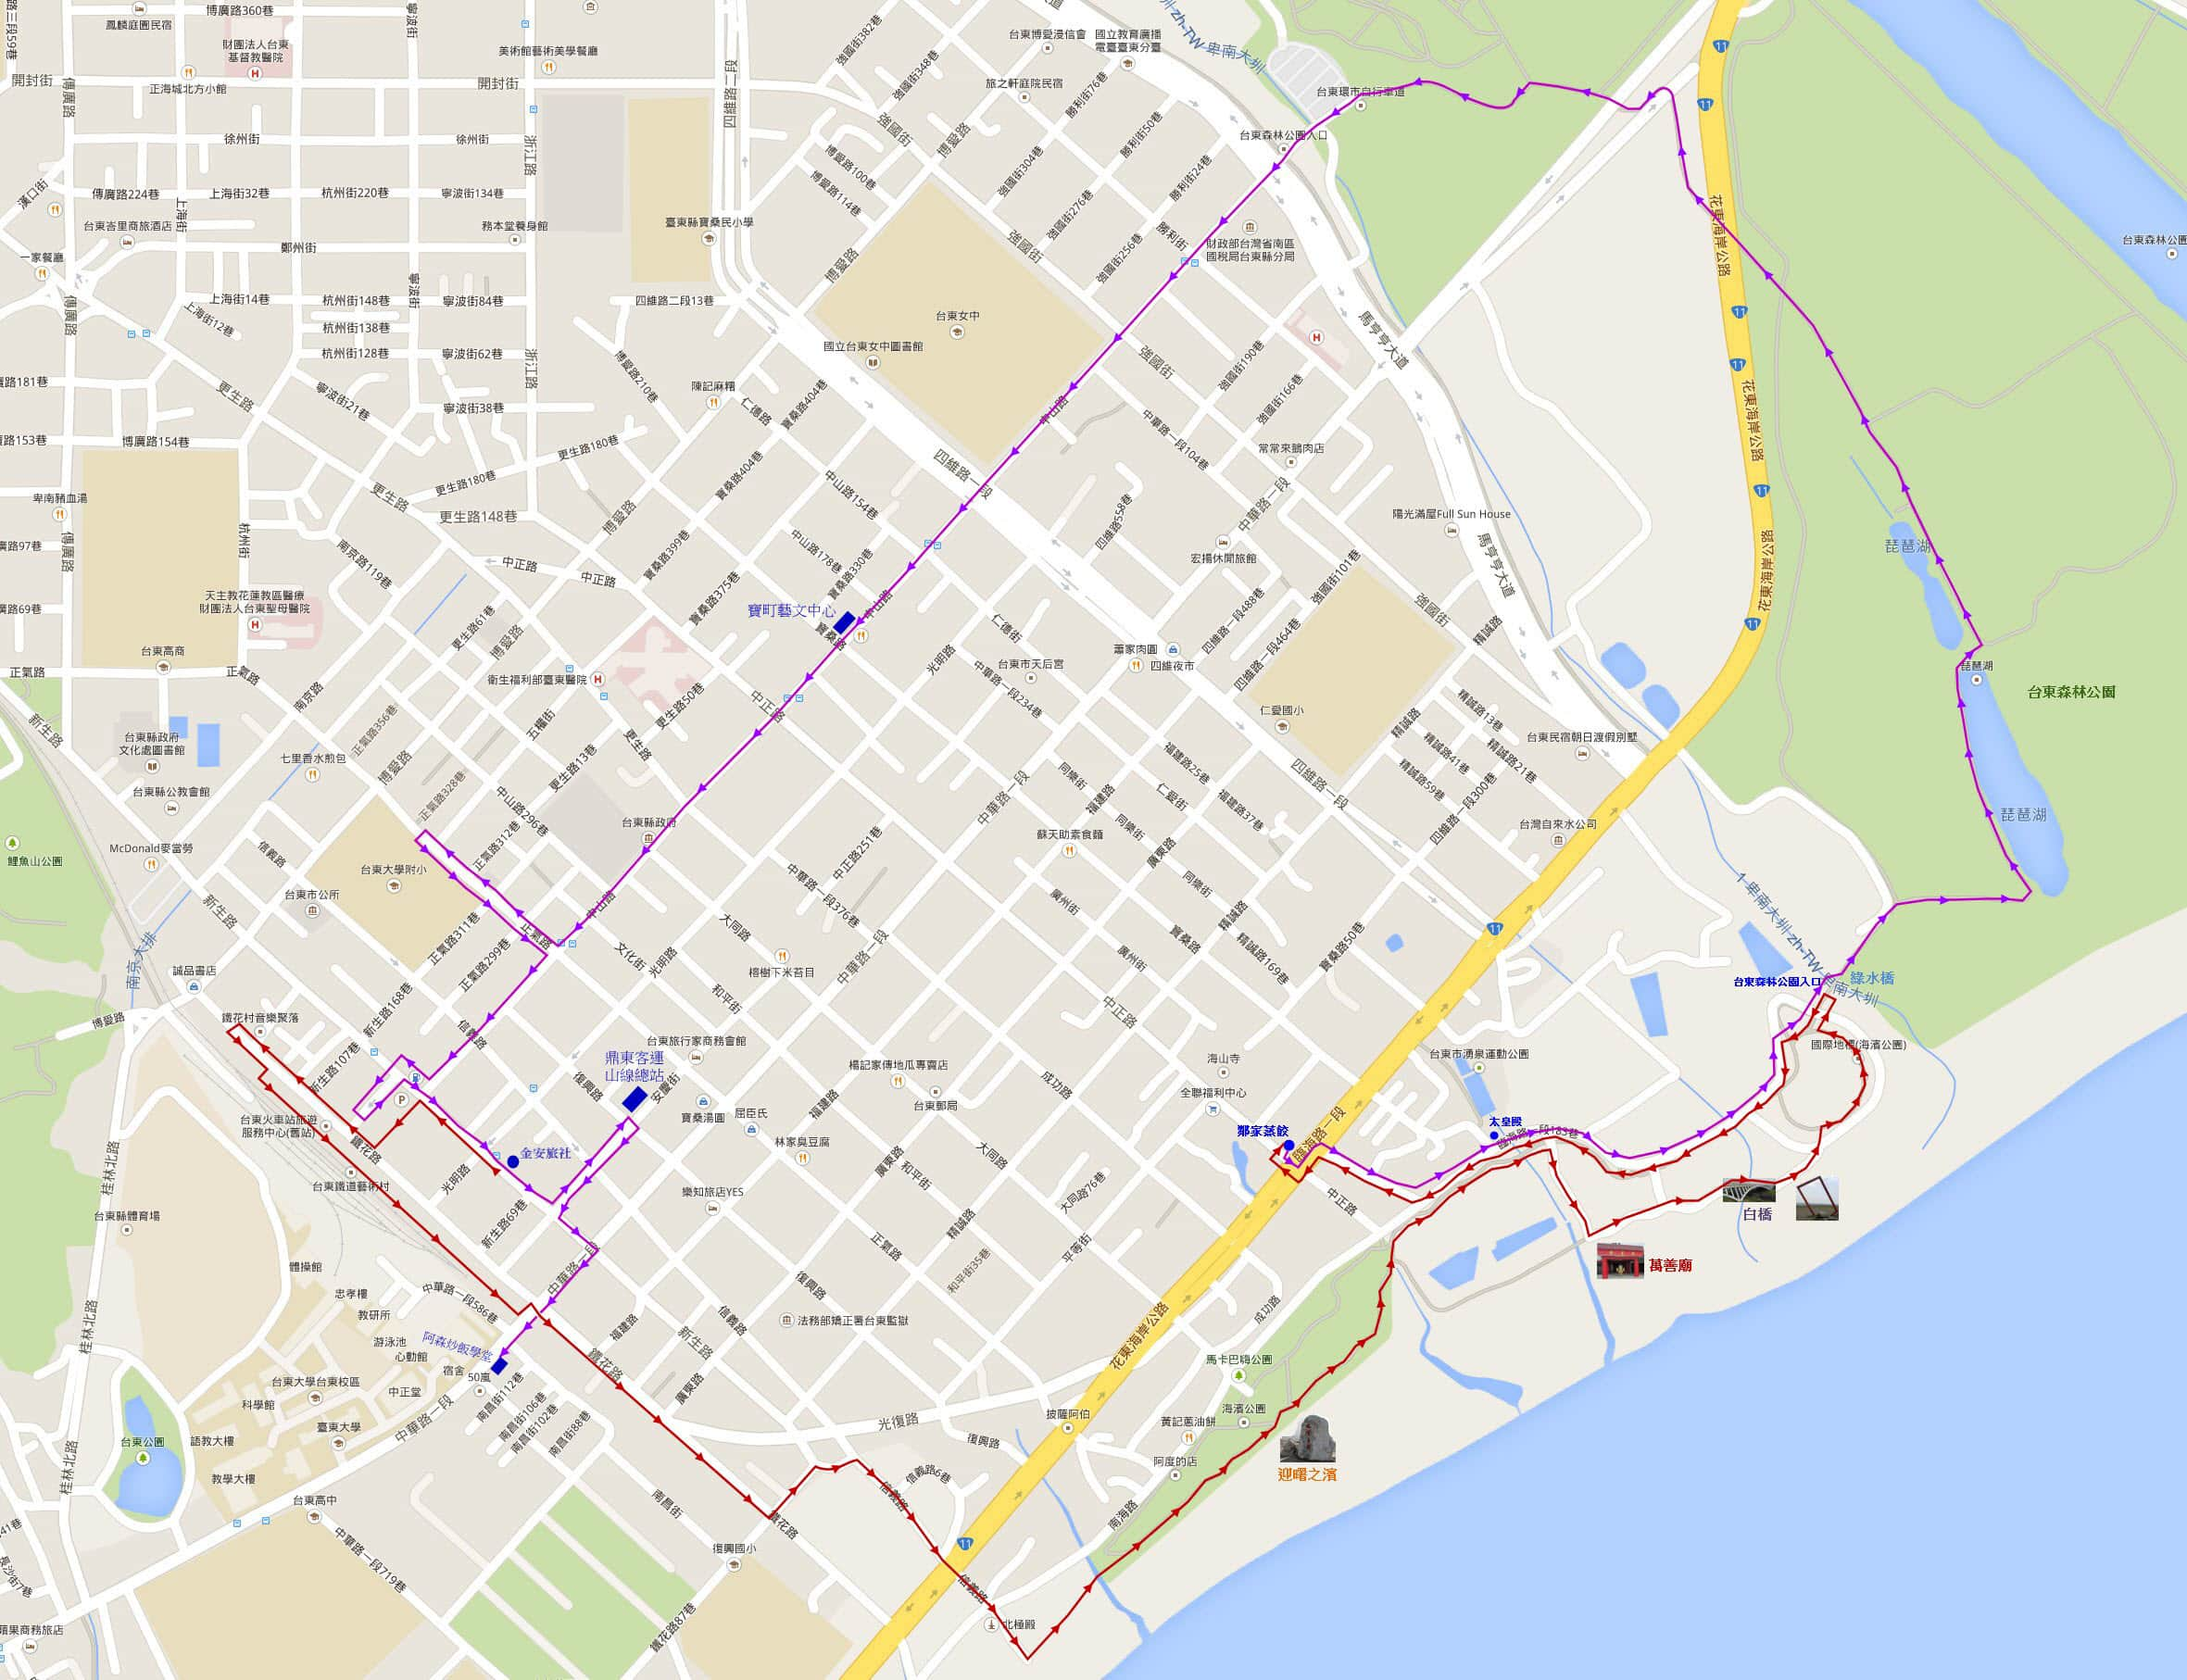 taitung-seashore-park-forest-park-walk-route